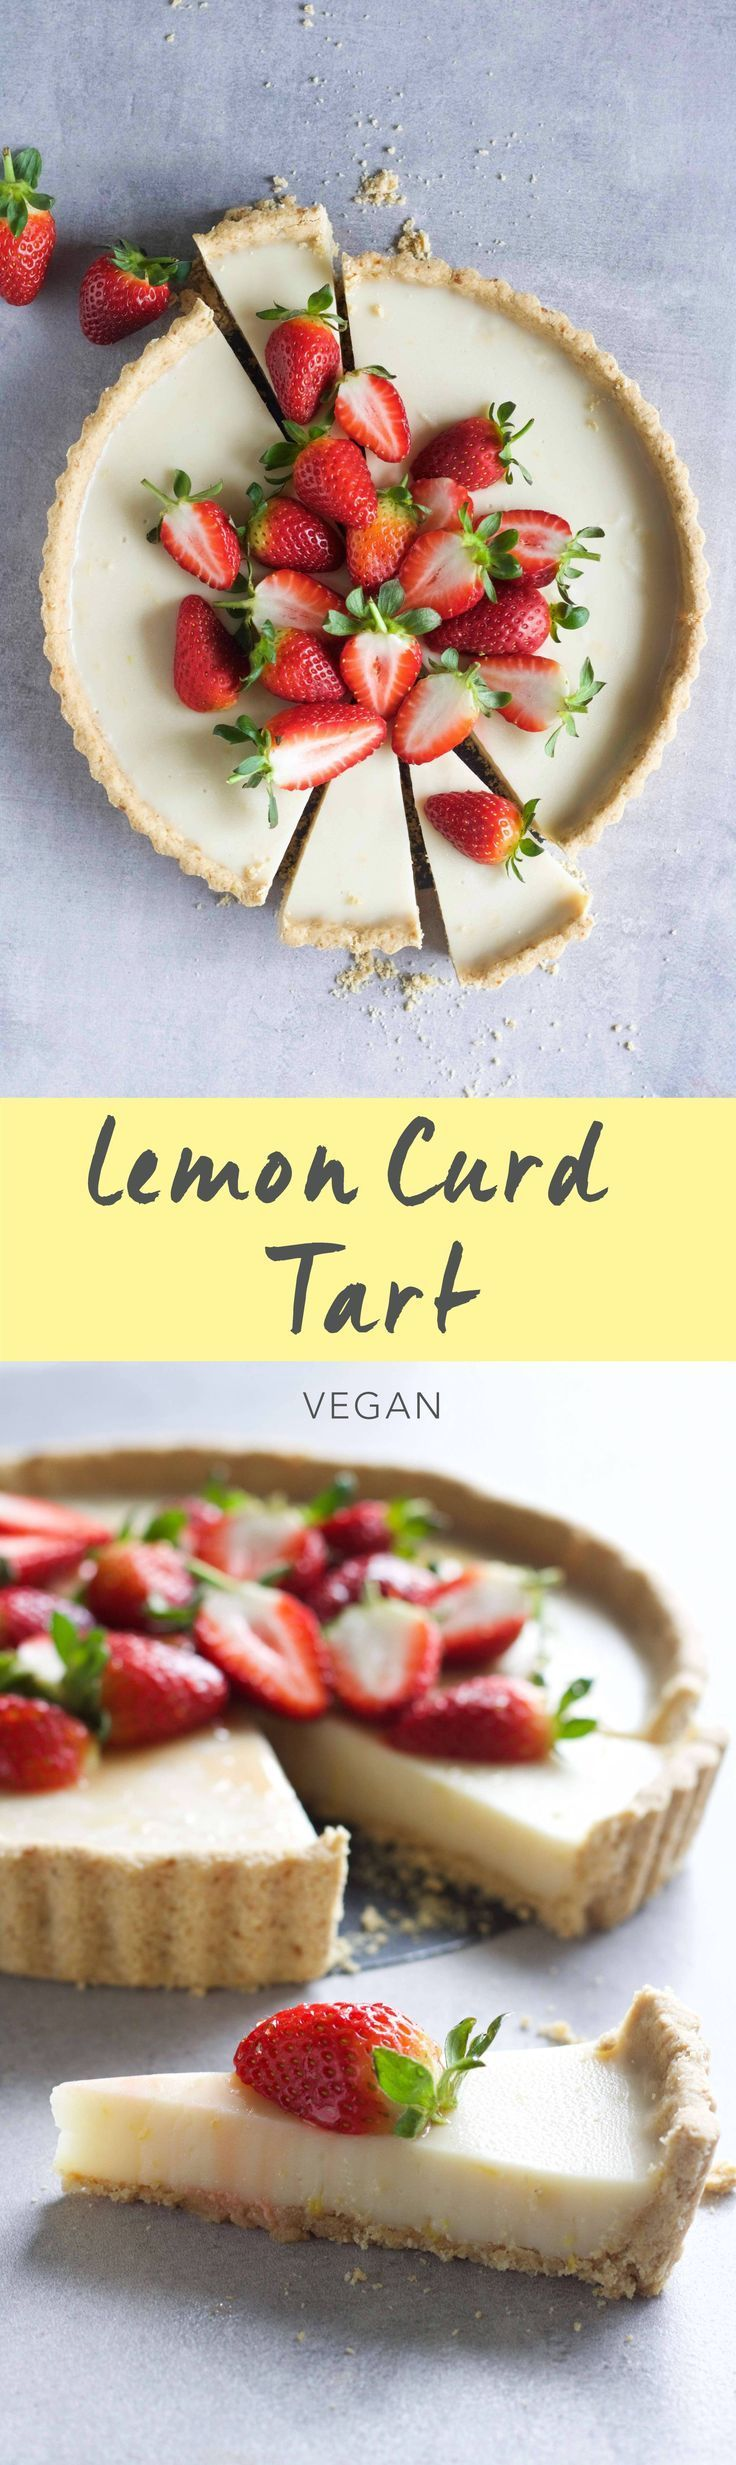 Vegan Lemon Curd Tart is part of Vegan Lemon Curd Tart Amy Le Creations - Creamy lemon curd in a oat almond shell! Vegan, gluten free (if you can have oats) and simple to put together